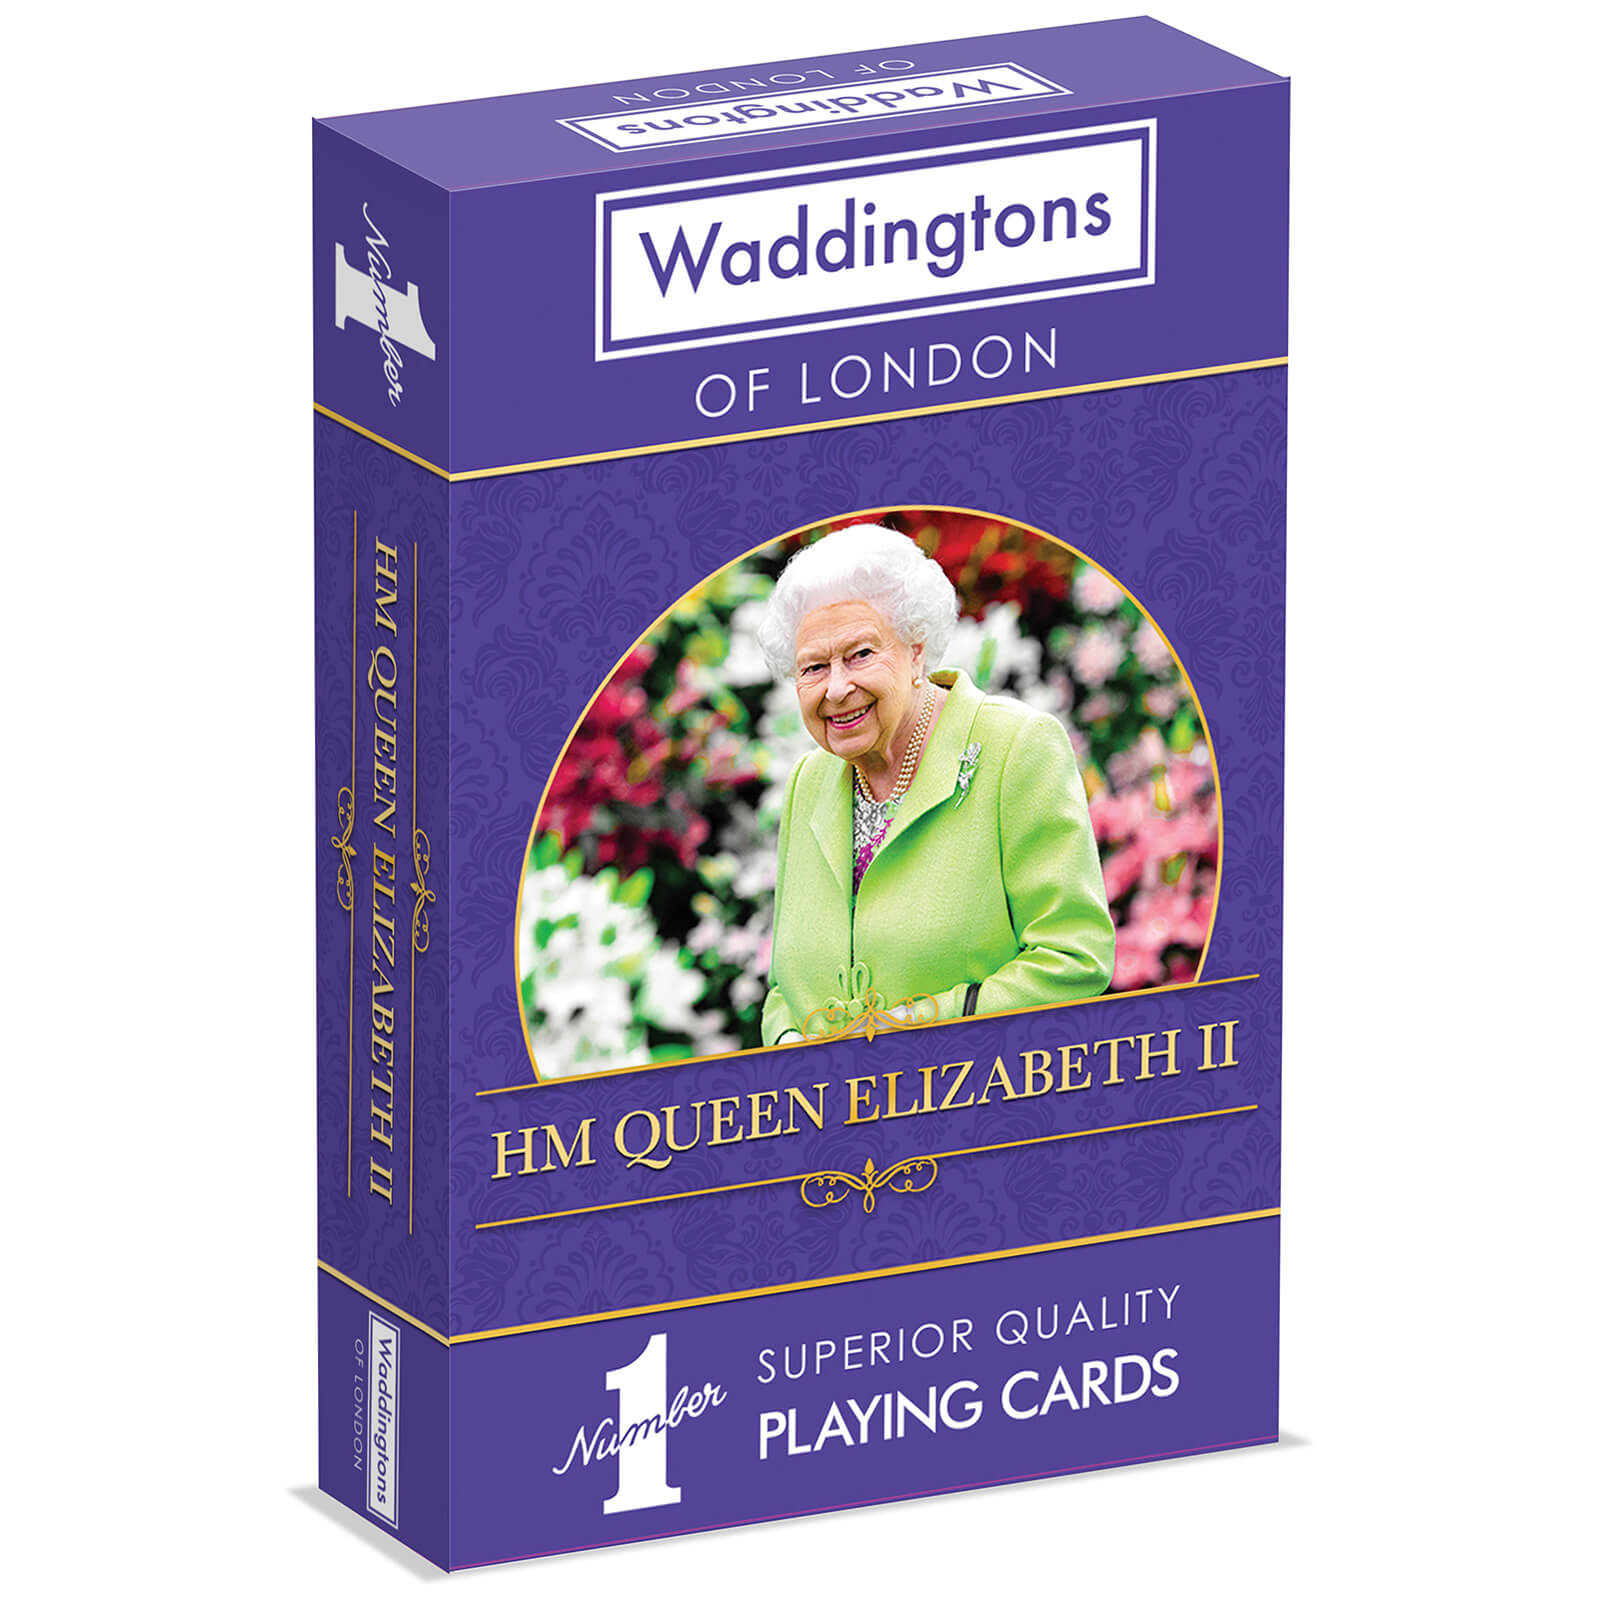 Image of Waddingtons Number 1 Playing Cards - HM Queen Elizabeth II Edition